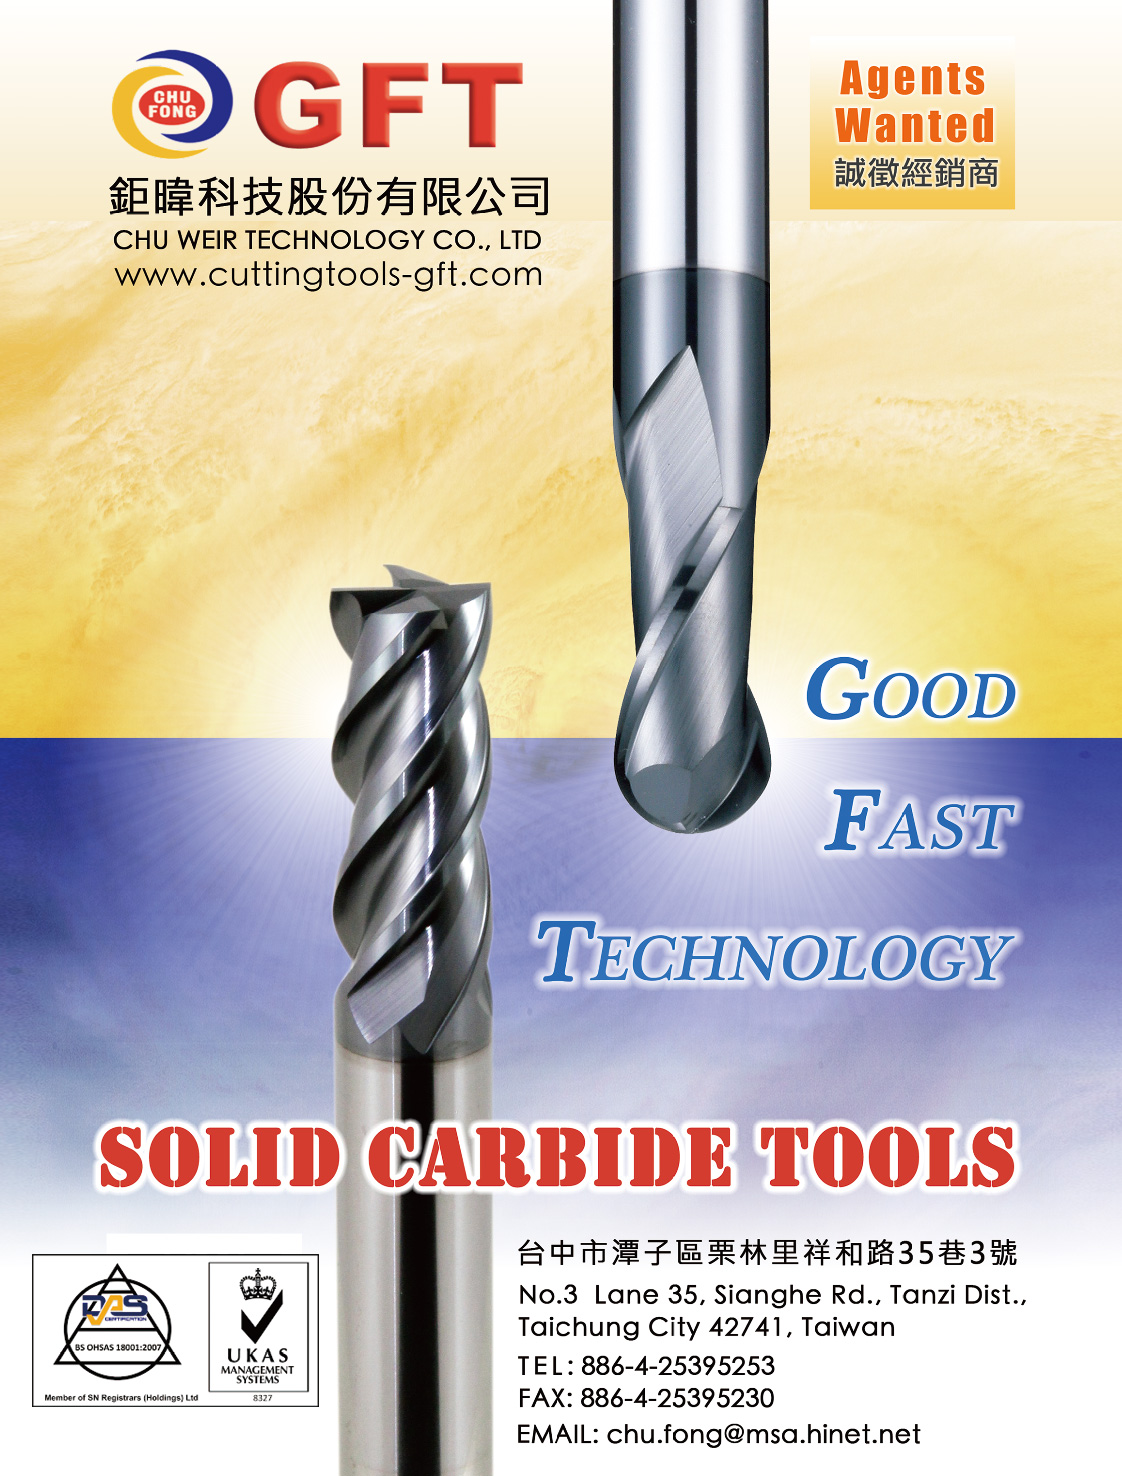 CHU WEIR TECHNOLOGY CO., LTD.